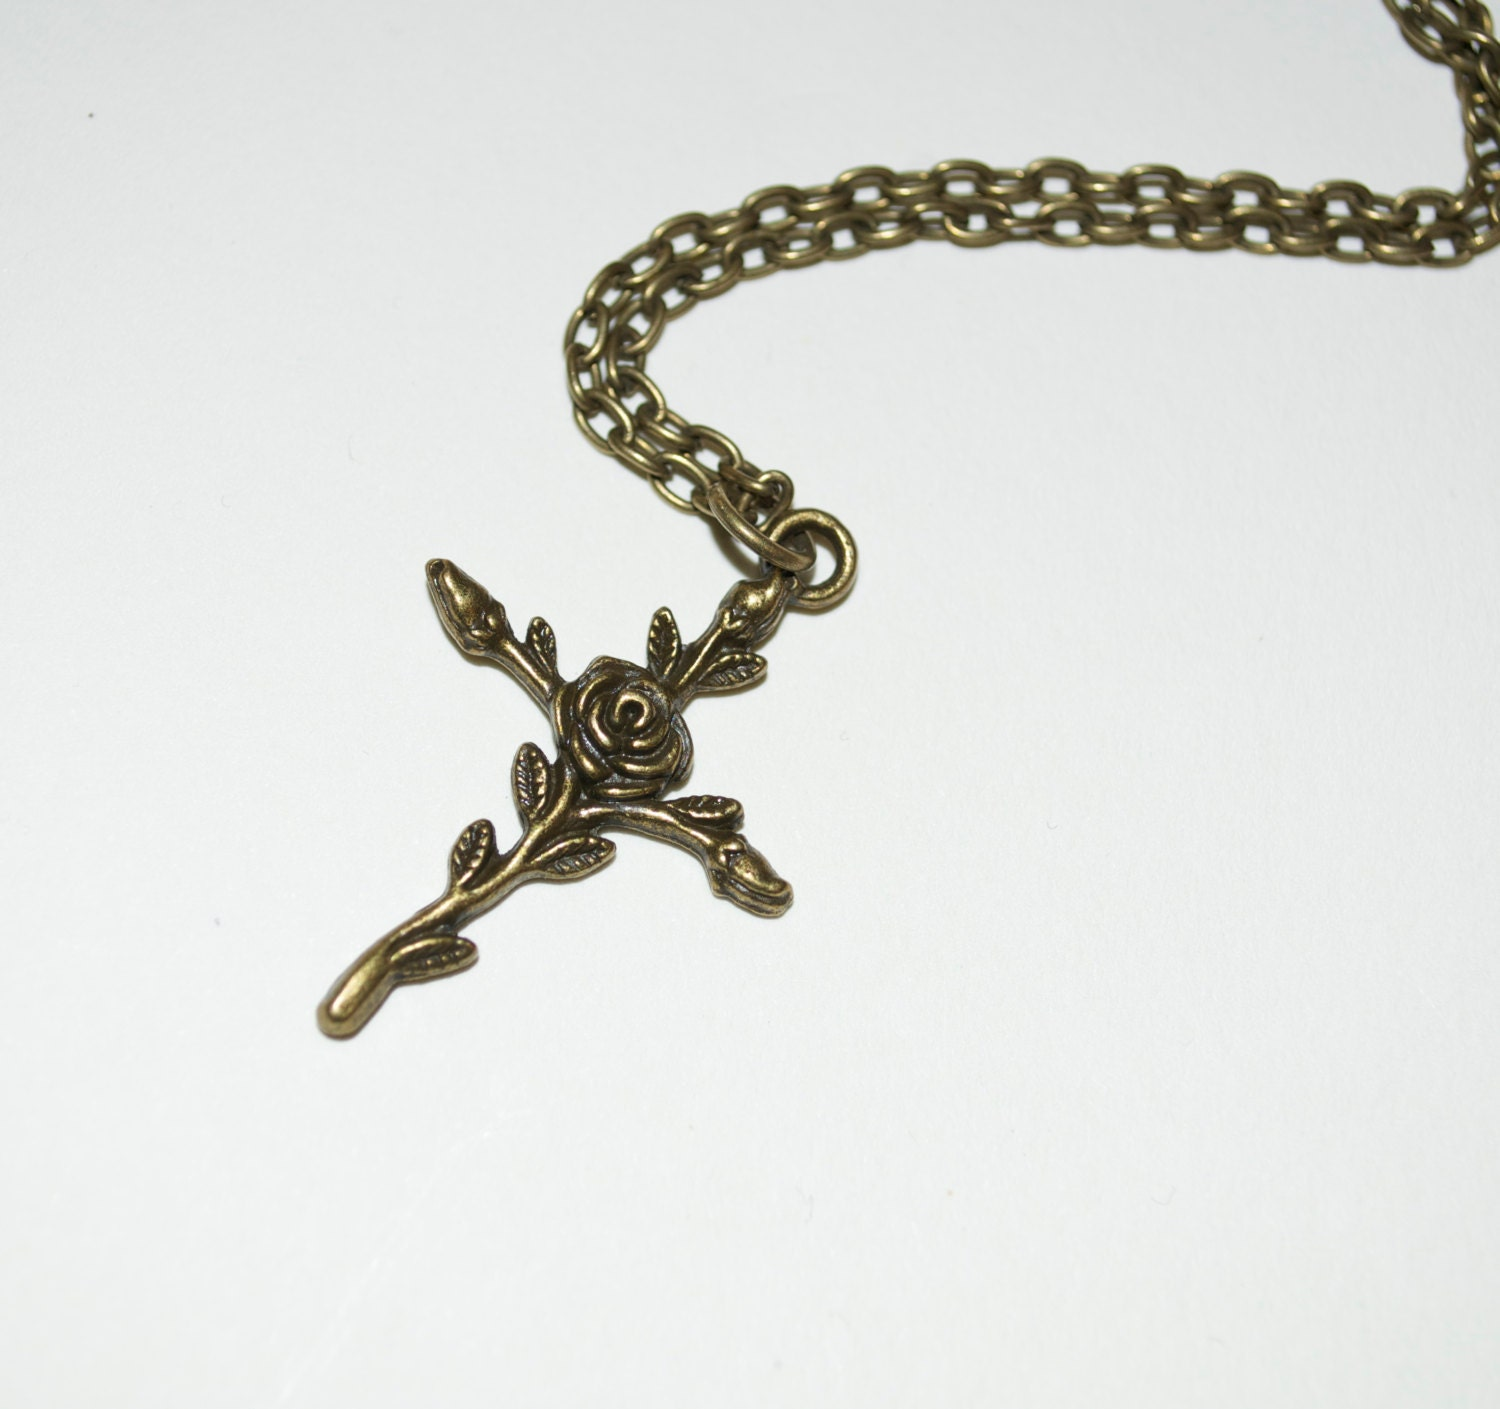 Crucifix pendant rose cross necklace bronze cross flower cross crucifix pendant rose cross necklace bronze cross flower cross feminine crucifix simple necklace everyday jewelry rose crucifix aloadofball Image collections